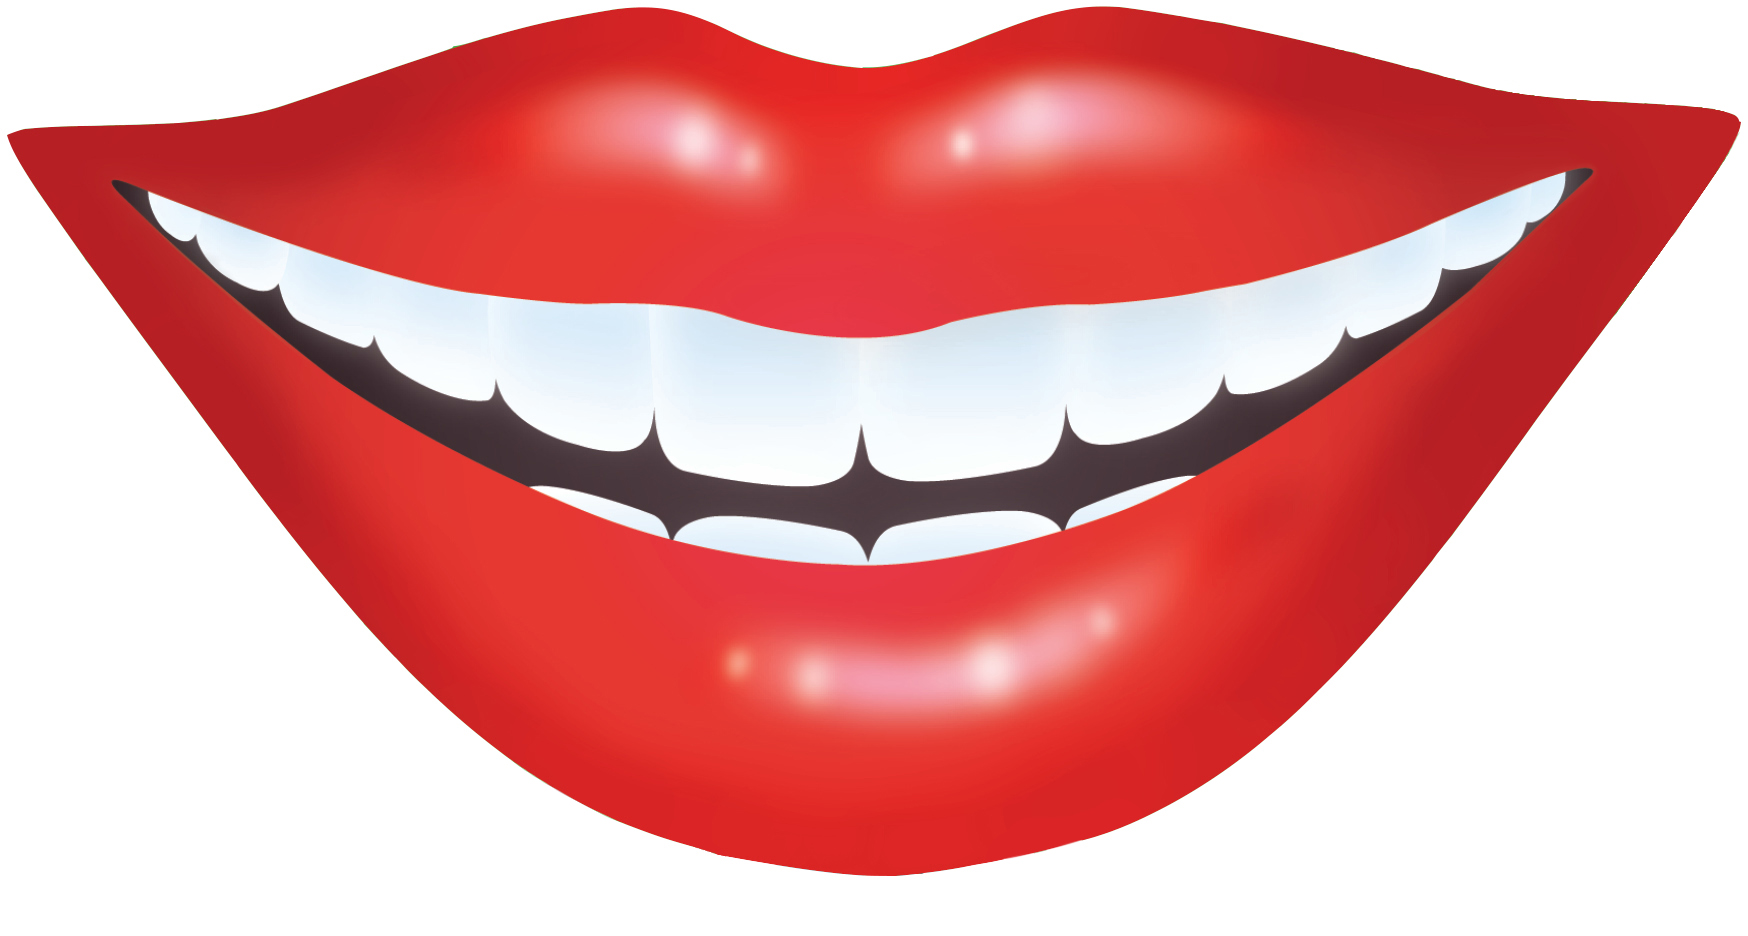 1748x936 Smiling Lips Clipart Amp Smiling Lips Clip Art Images